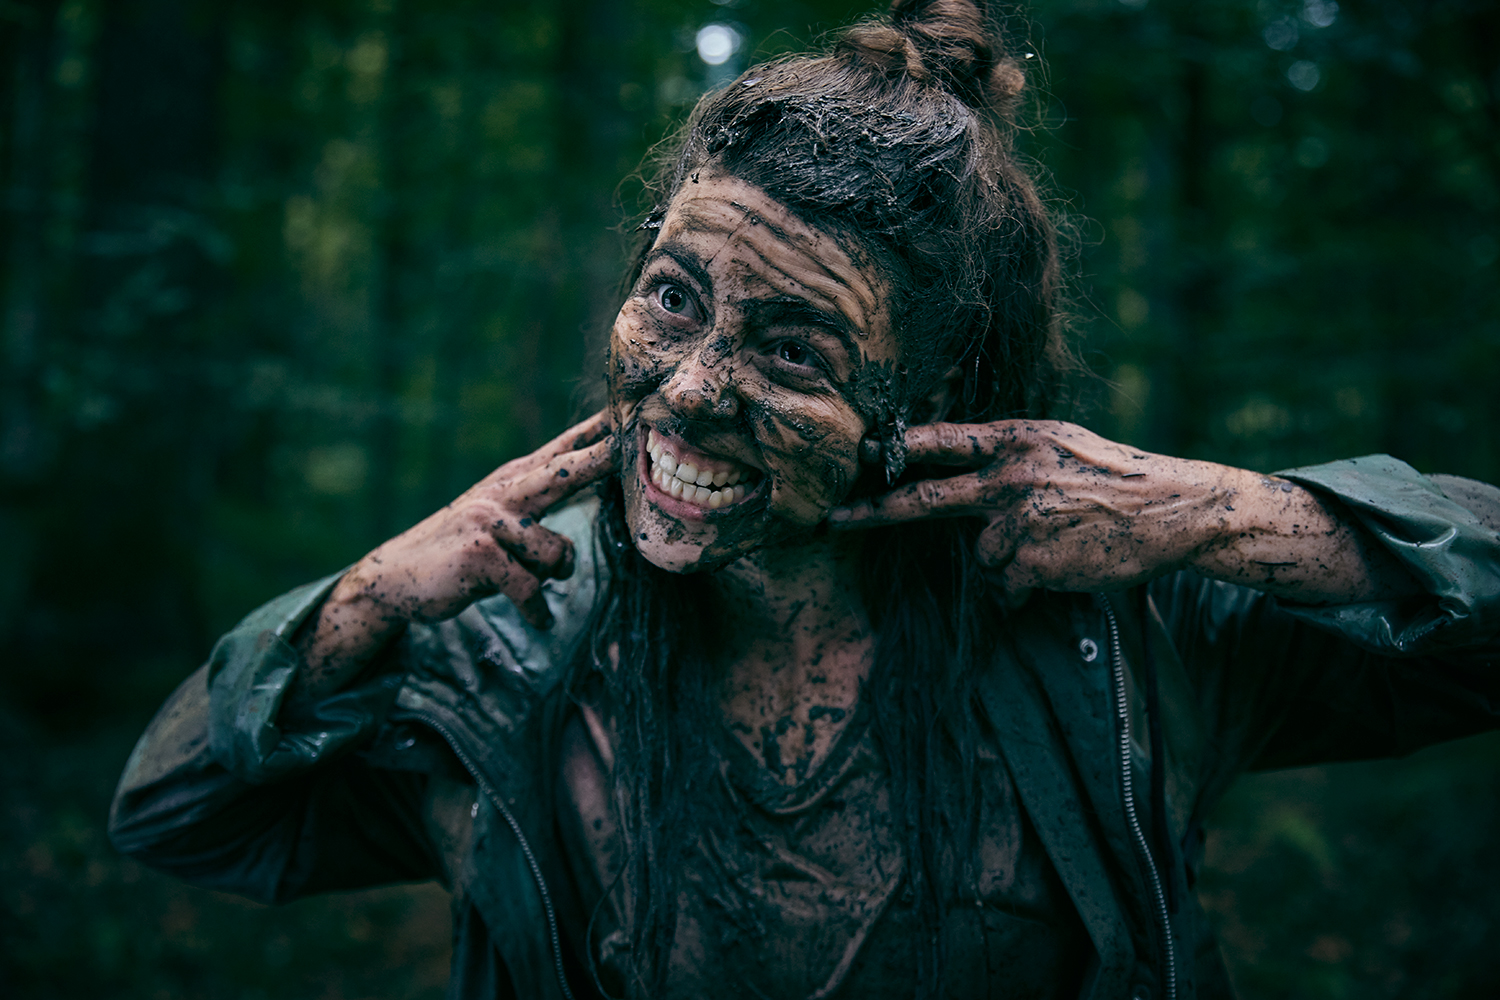 Woman making a scary face having bathed in mud